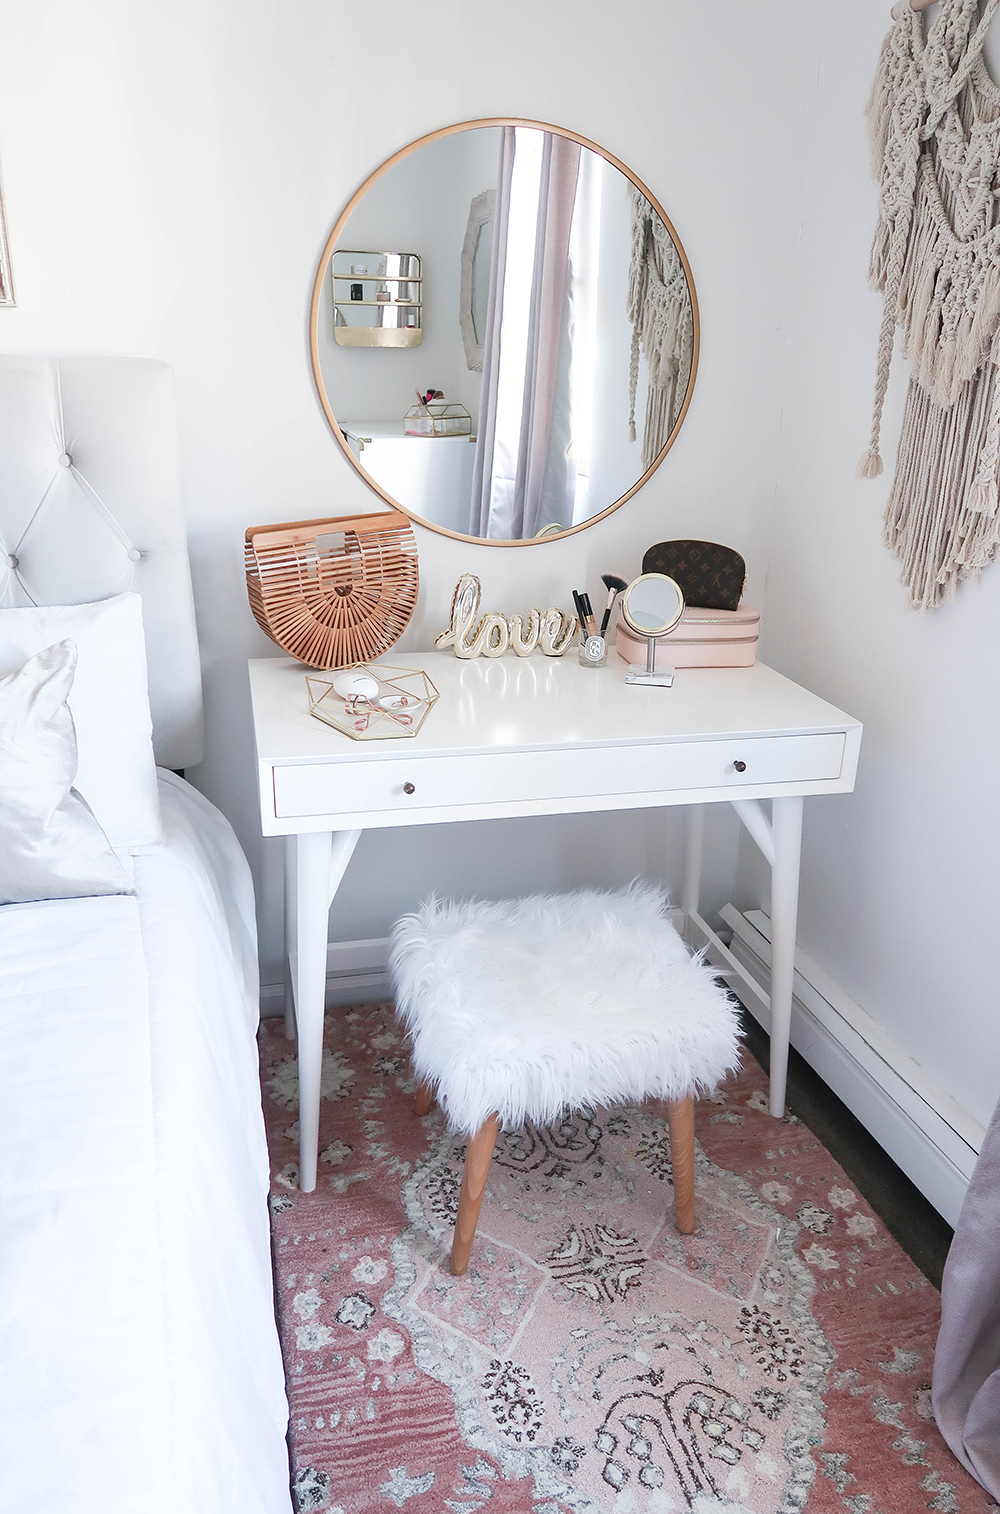 Styling Vanity In Small Space Home Decor Ideas